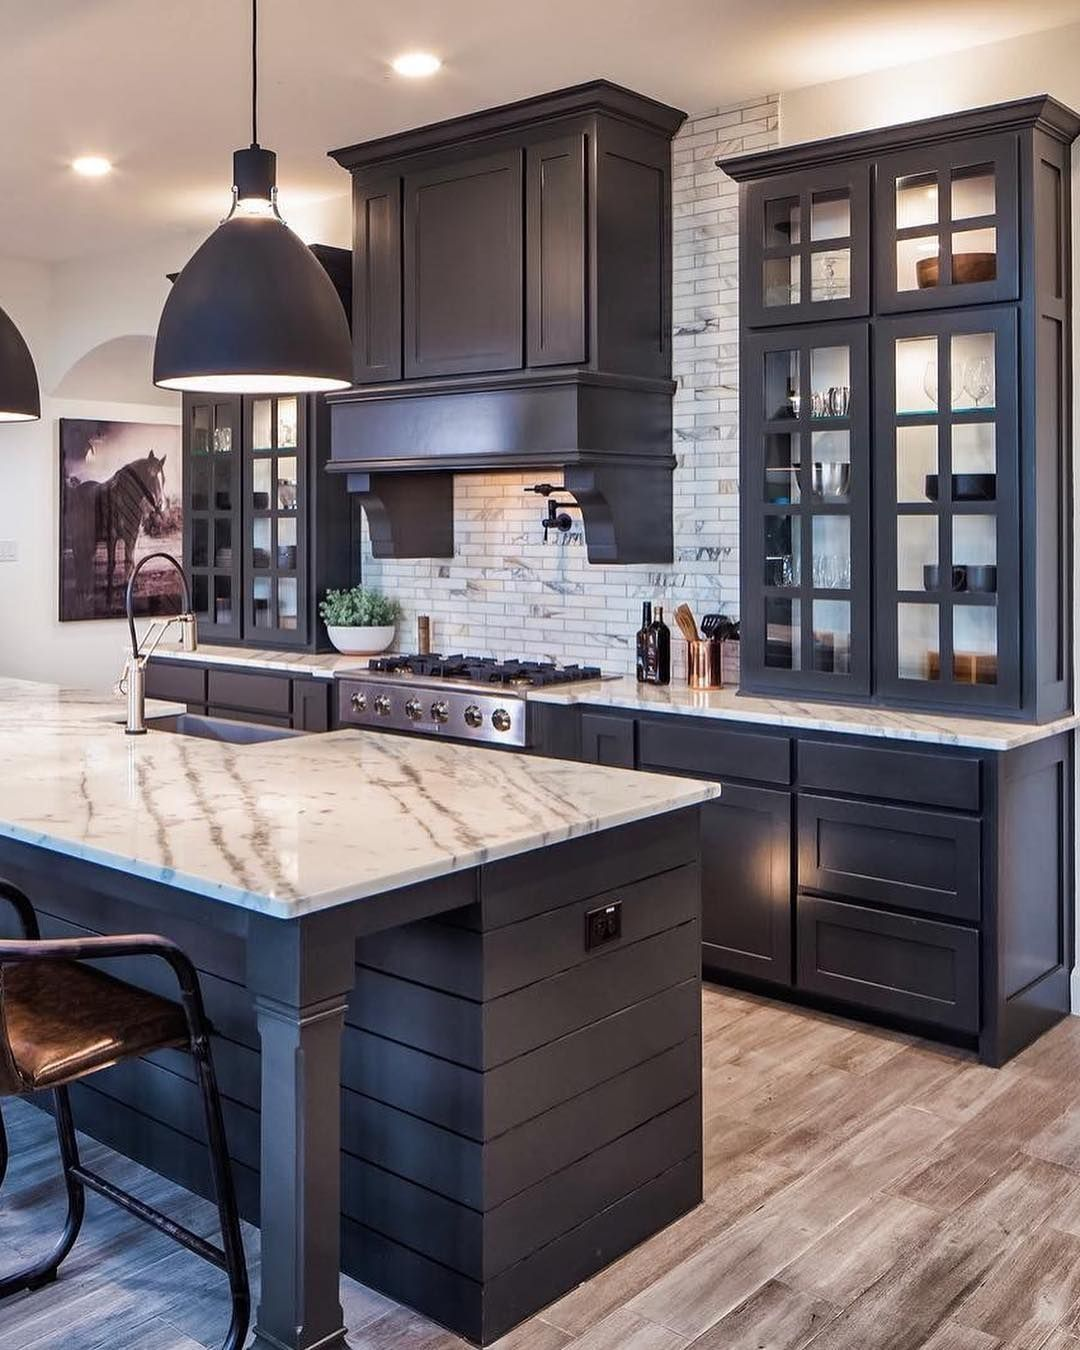 9+ Cool Kitchen Cabinets Design Ideas Are Trending Today ...